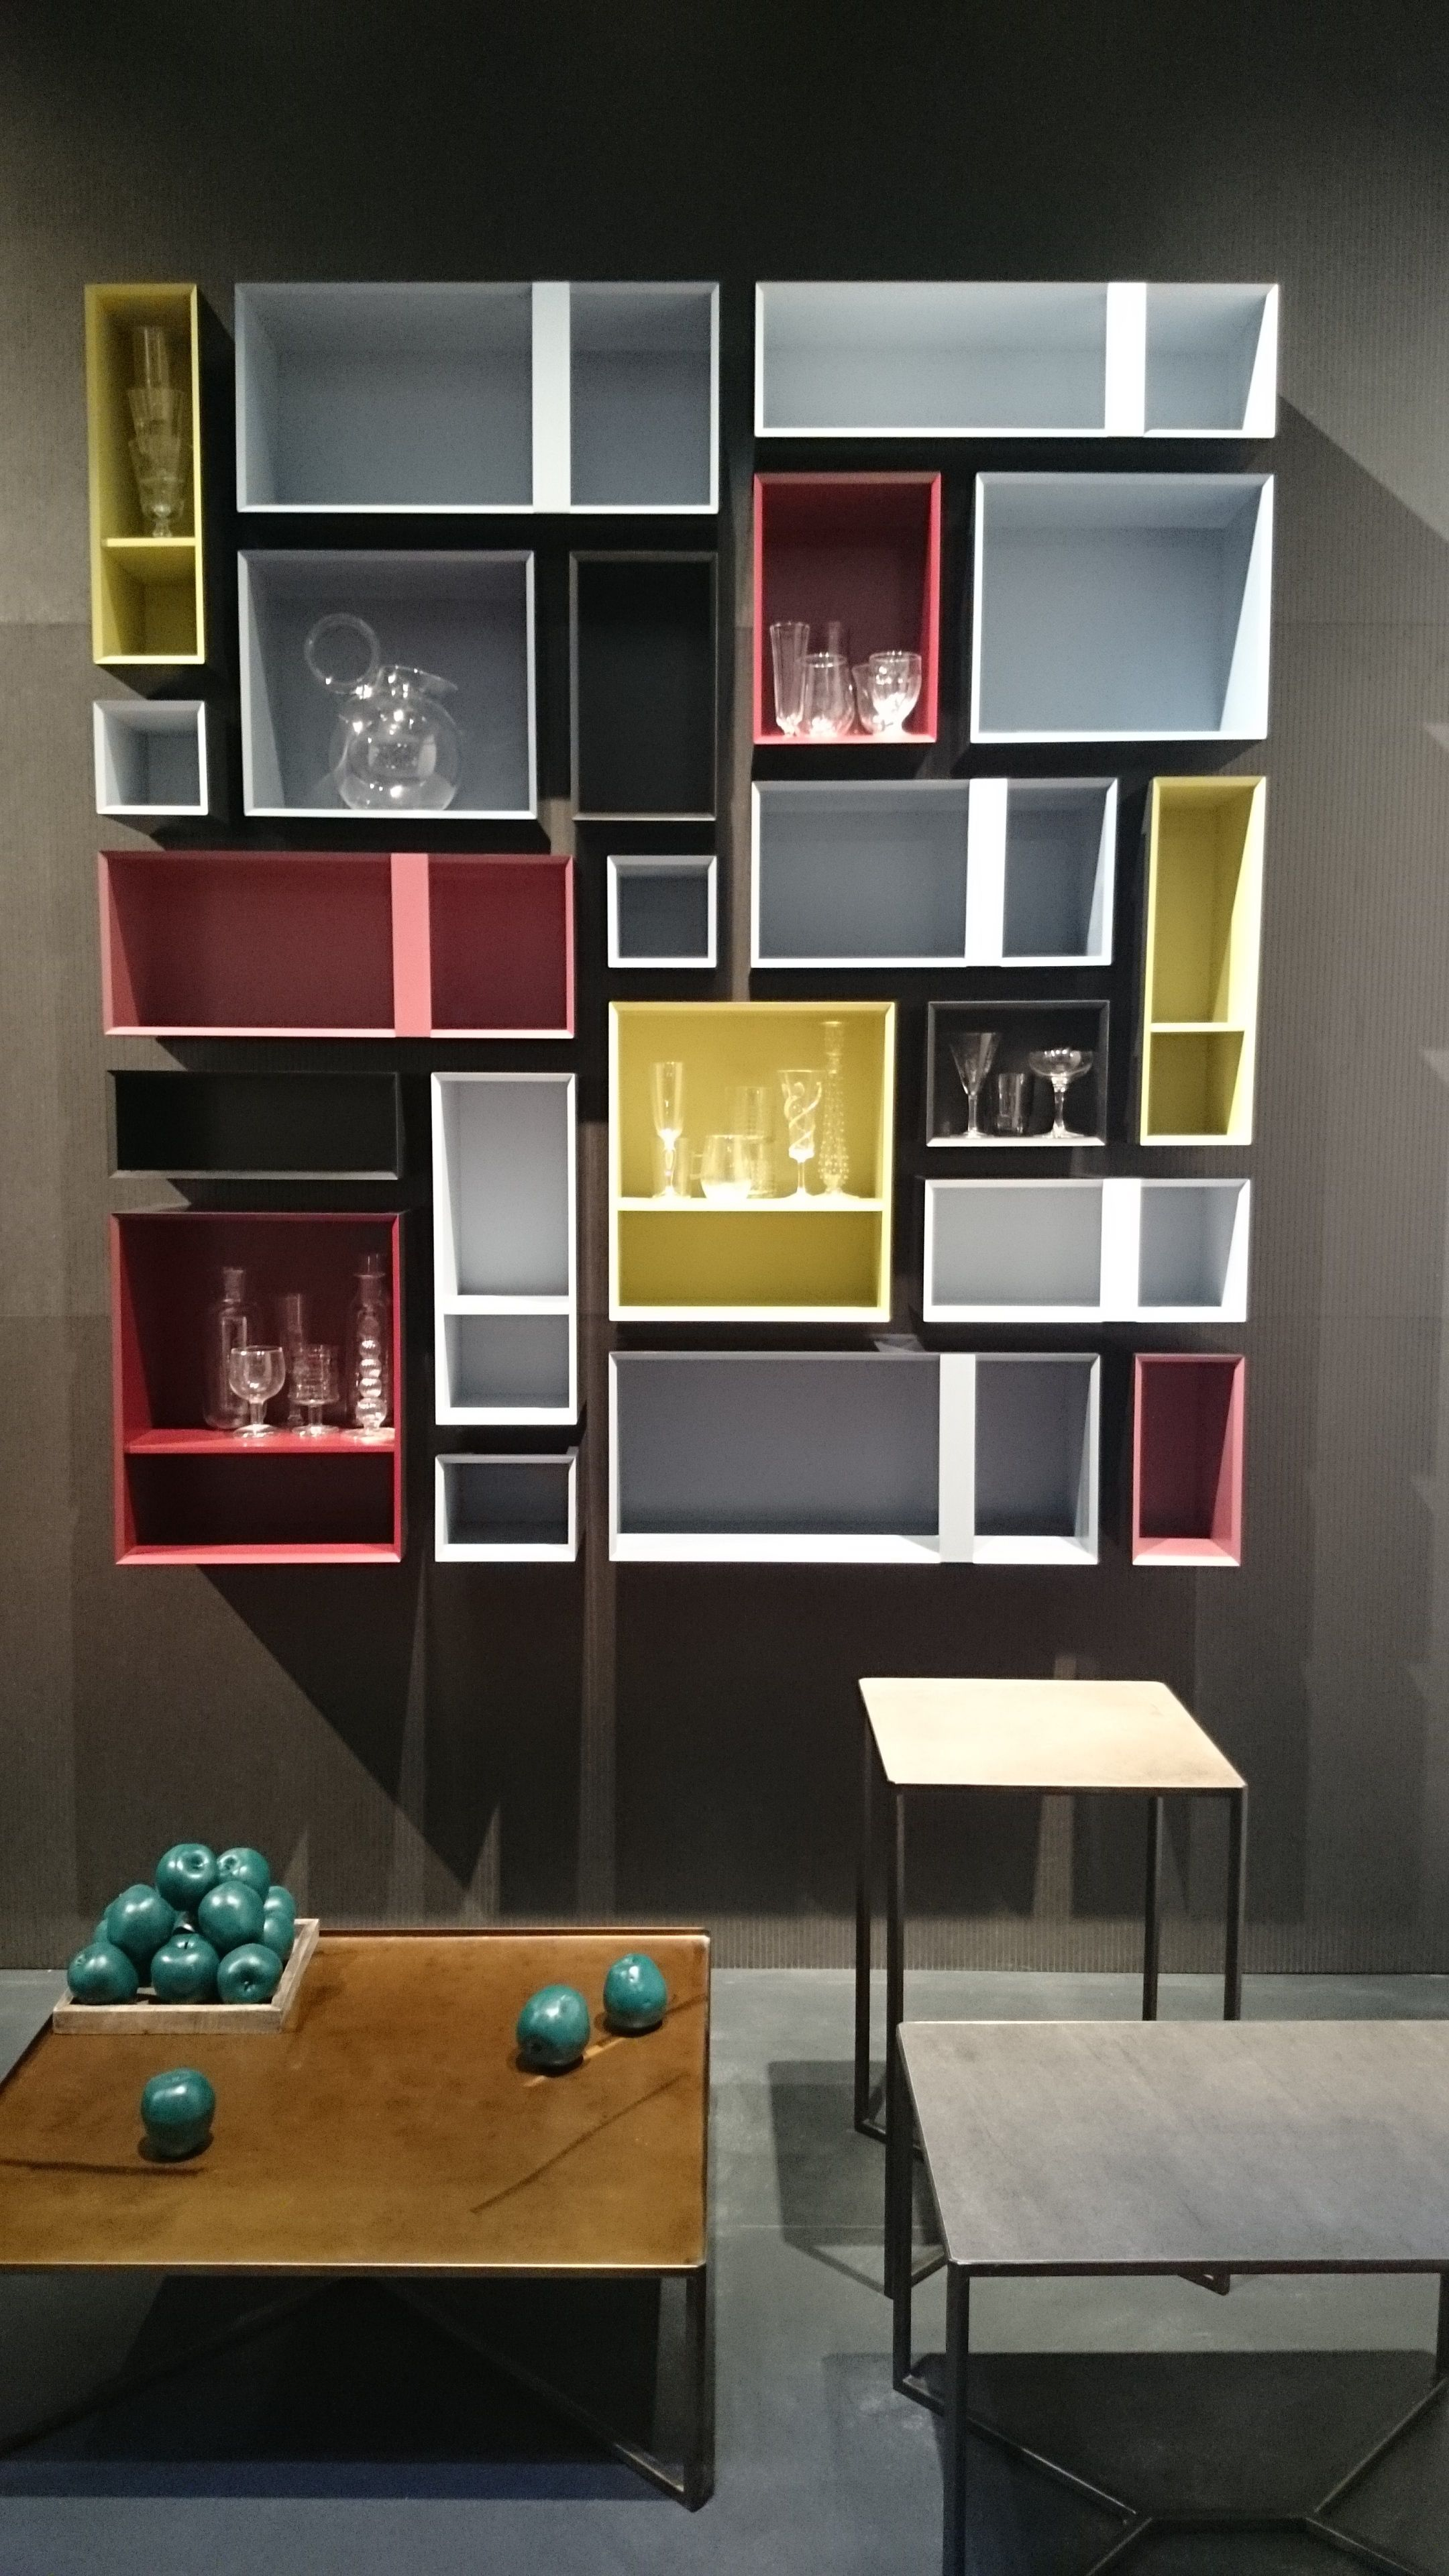 Design by Capodopera at Salone Del Mobile 2014 #milandesignweek